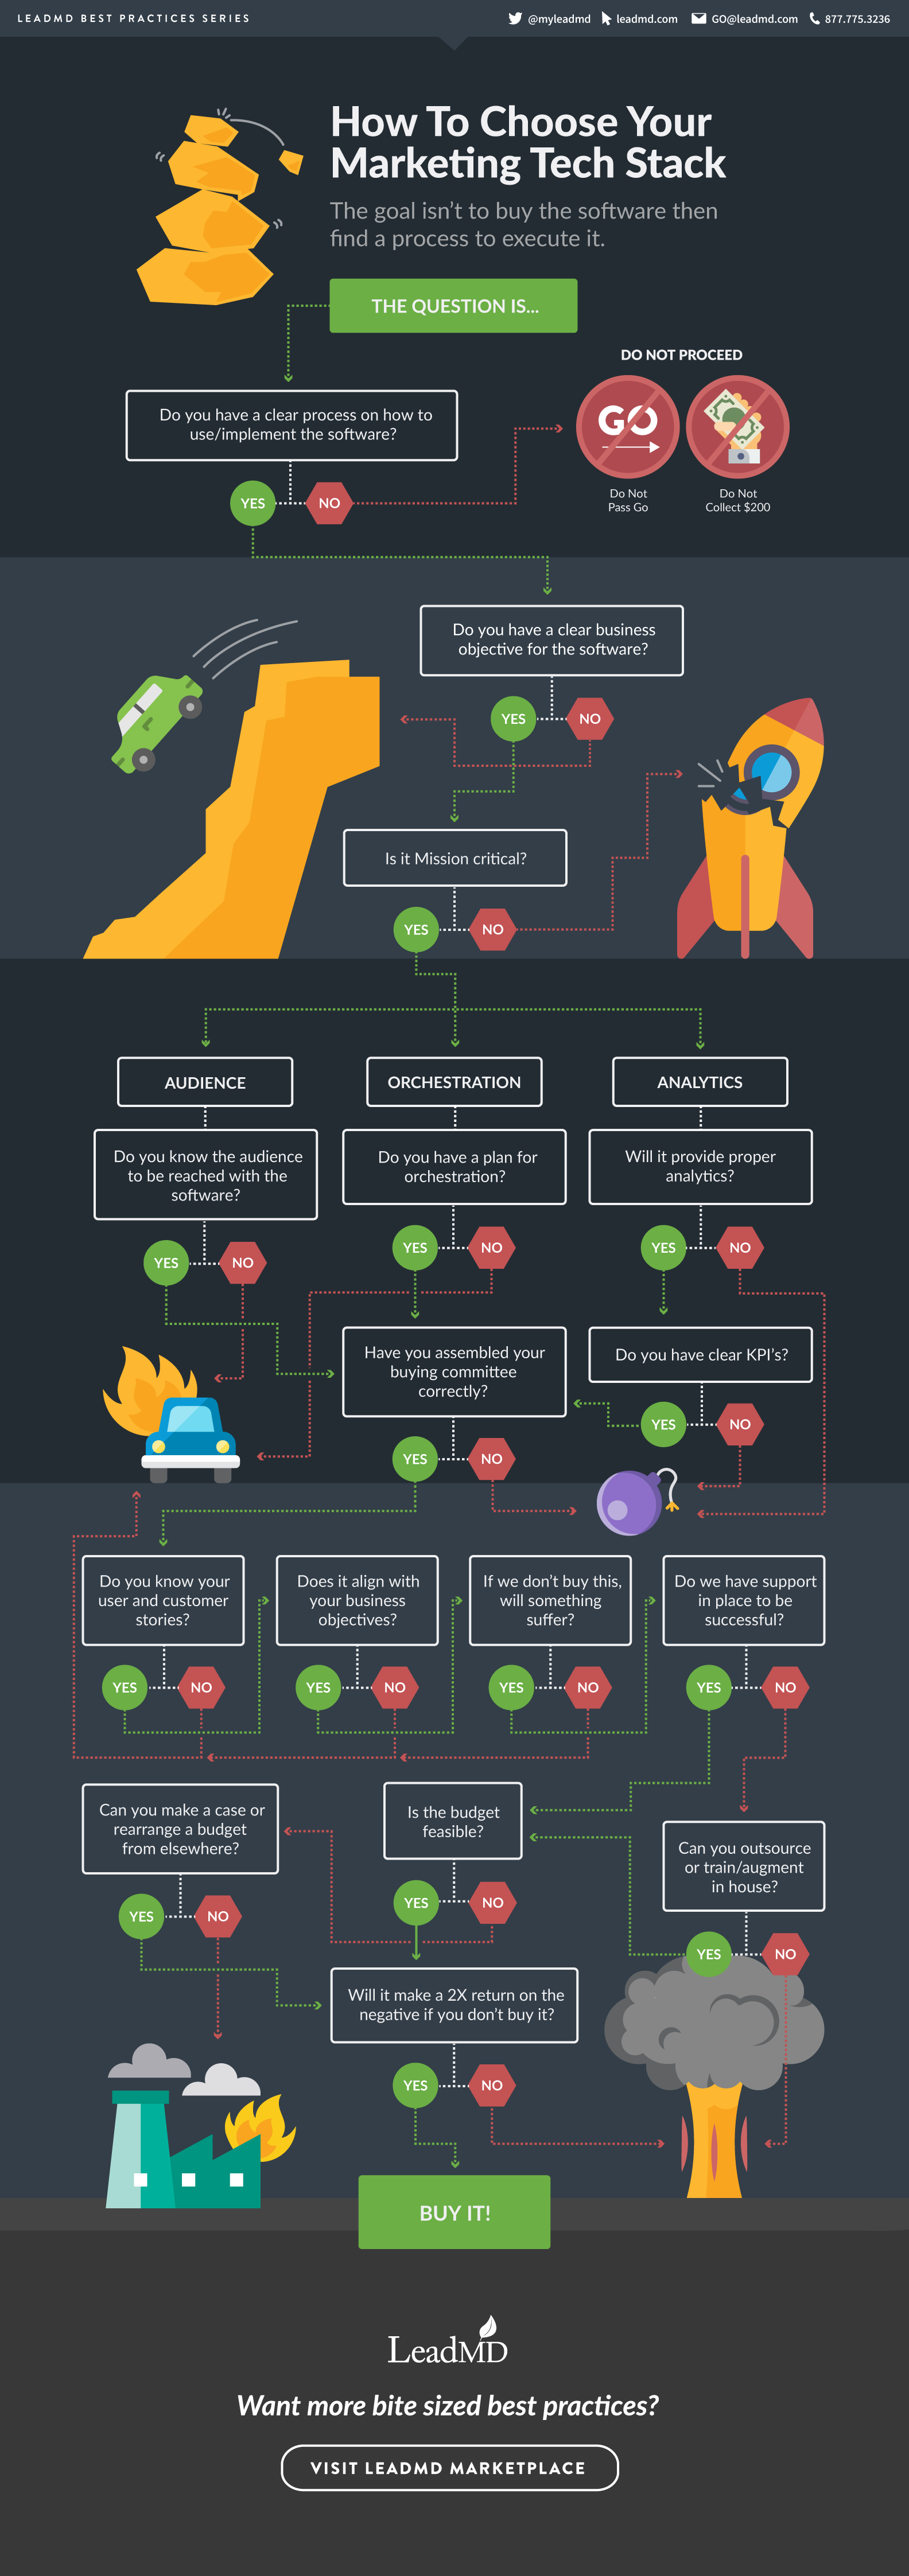 LeadMD Demo - How to Choose Your Optimal Marketing Technology Stack - Infographic